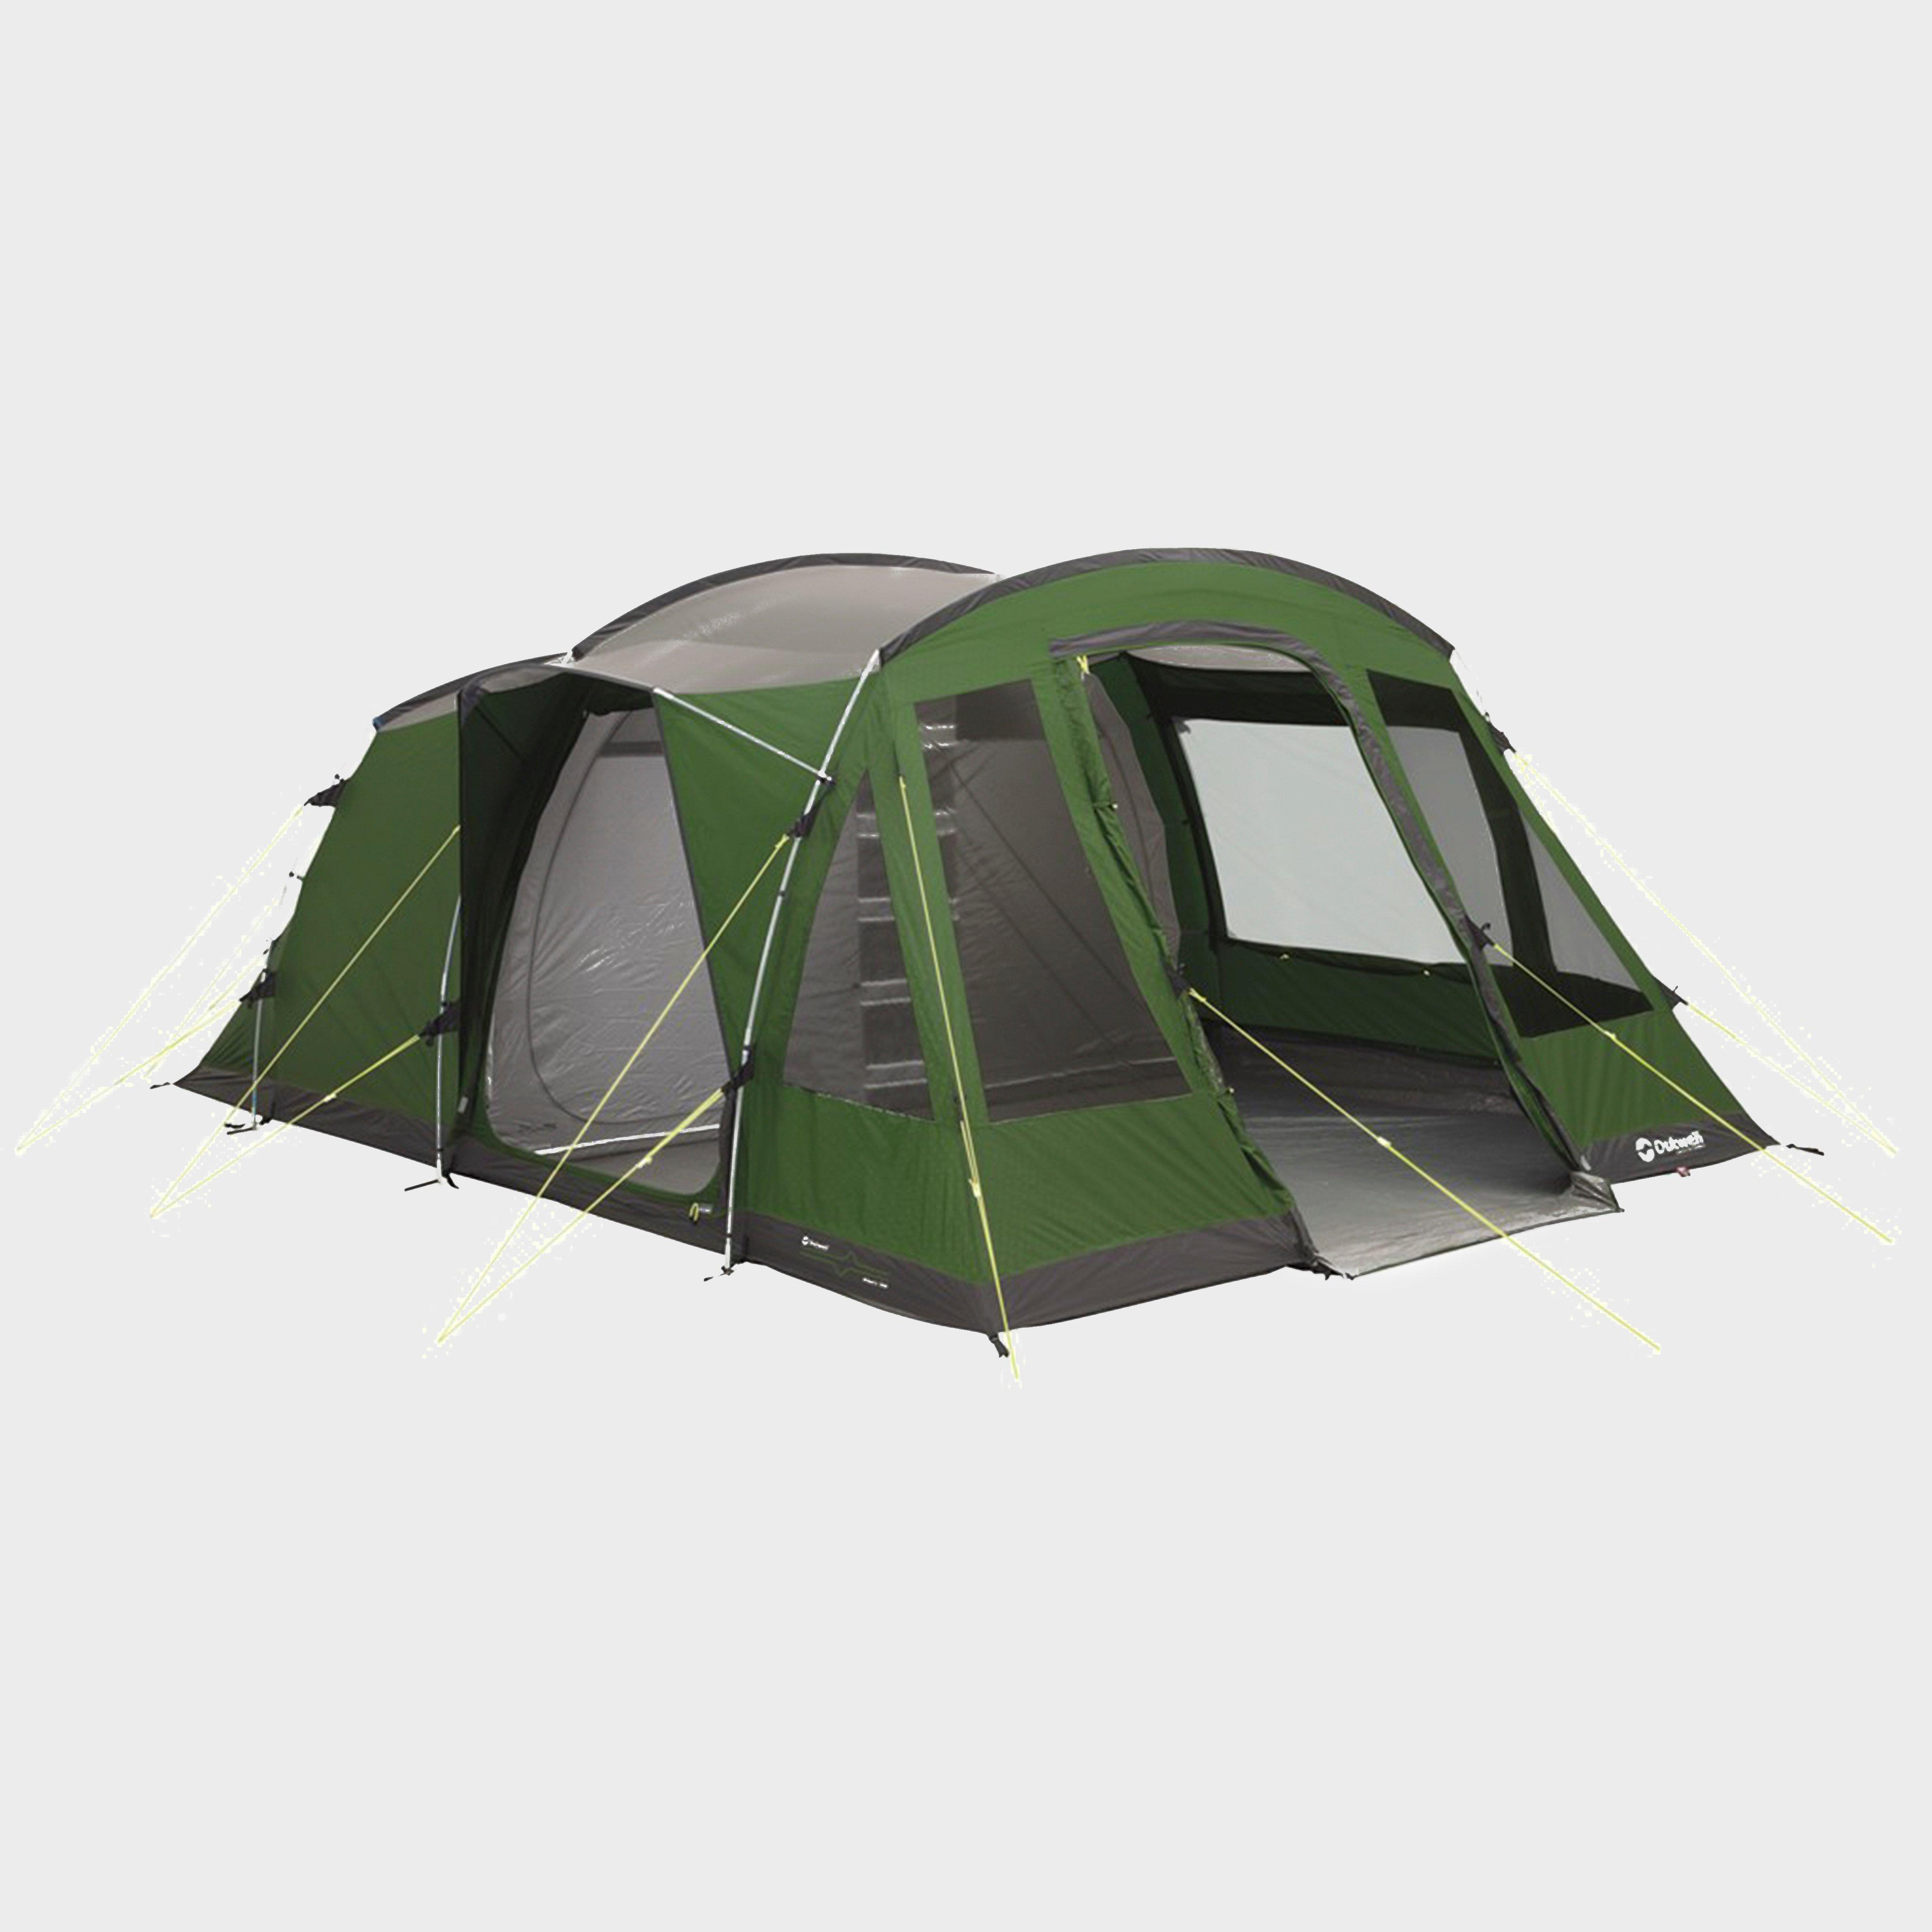 OUTWELL Albany 500 5 Person Tent & Outwell Family Festival u0026 Pop Up Tents | Blacks